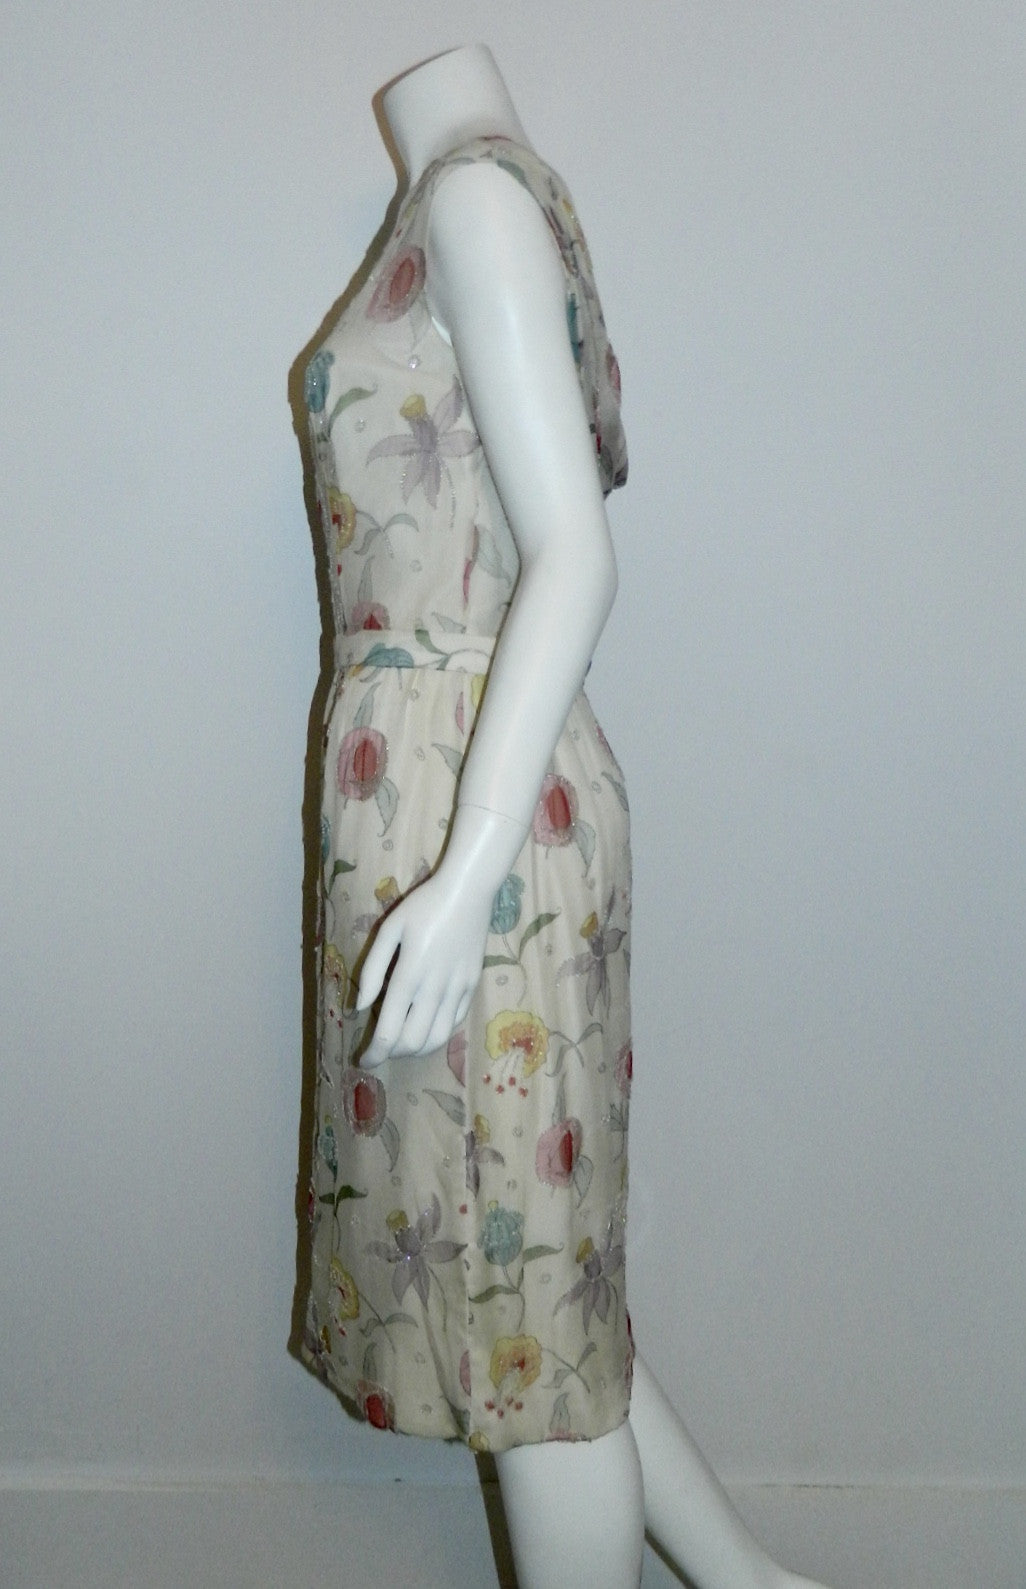 vintage 1950s silk chiffon beaded dress Jobere New York floral print wedding gown M